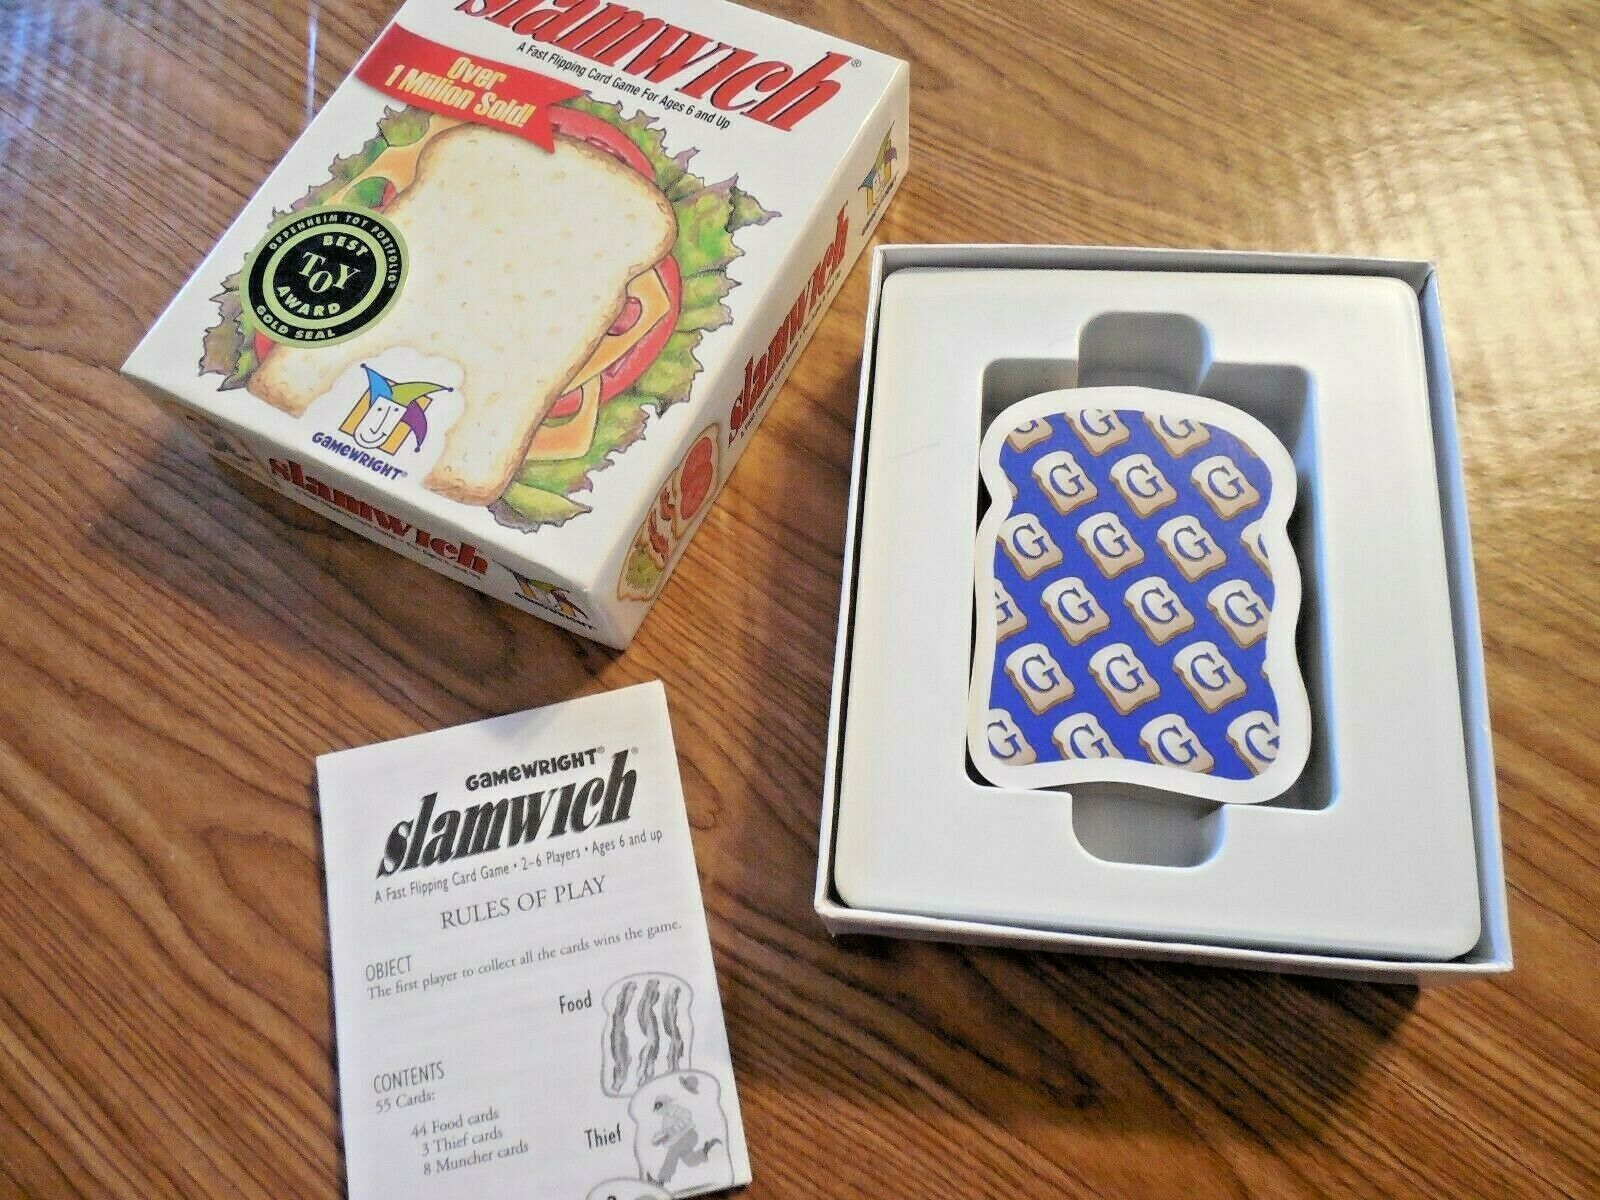 2003 Slamwich Fast Flipping Card Game Gamewright Complete S7